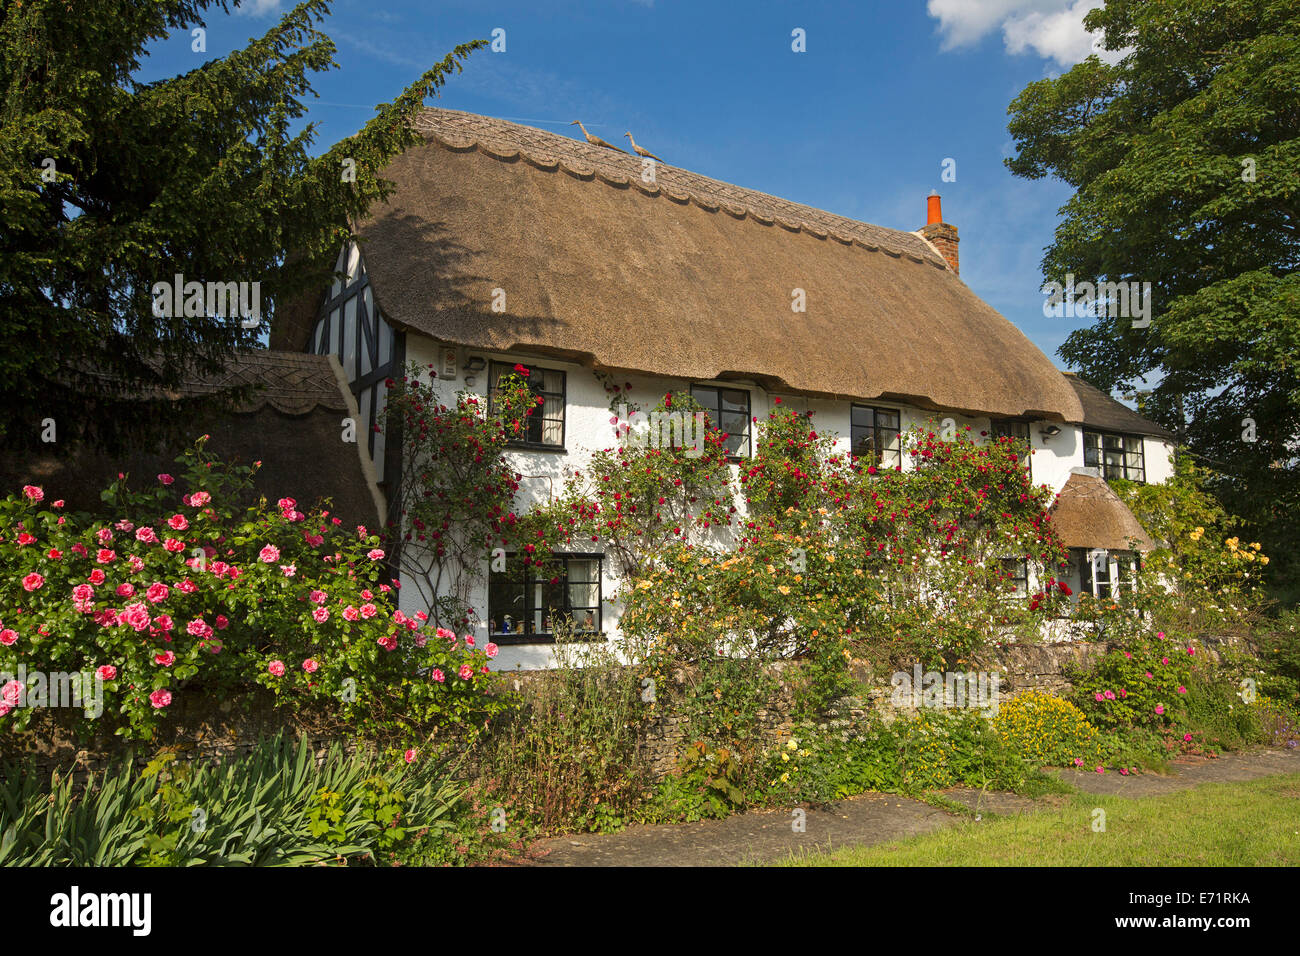 Picturesque english cottage with thatched roof white walls covered with red and yellow climbing roses blue sky near oxford